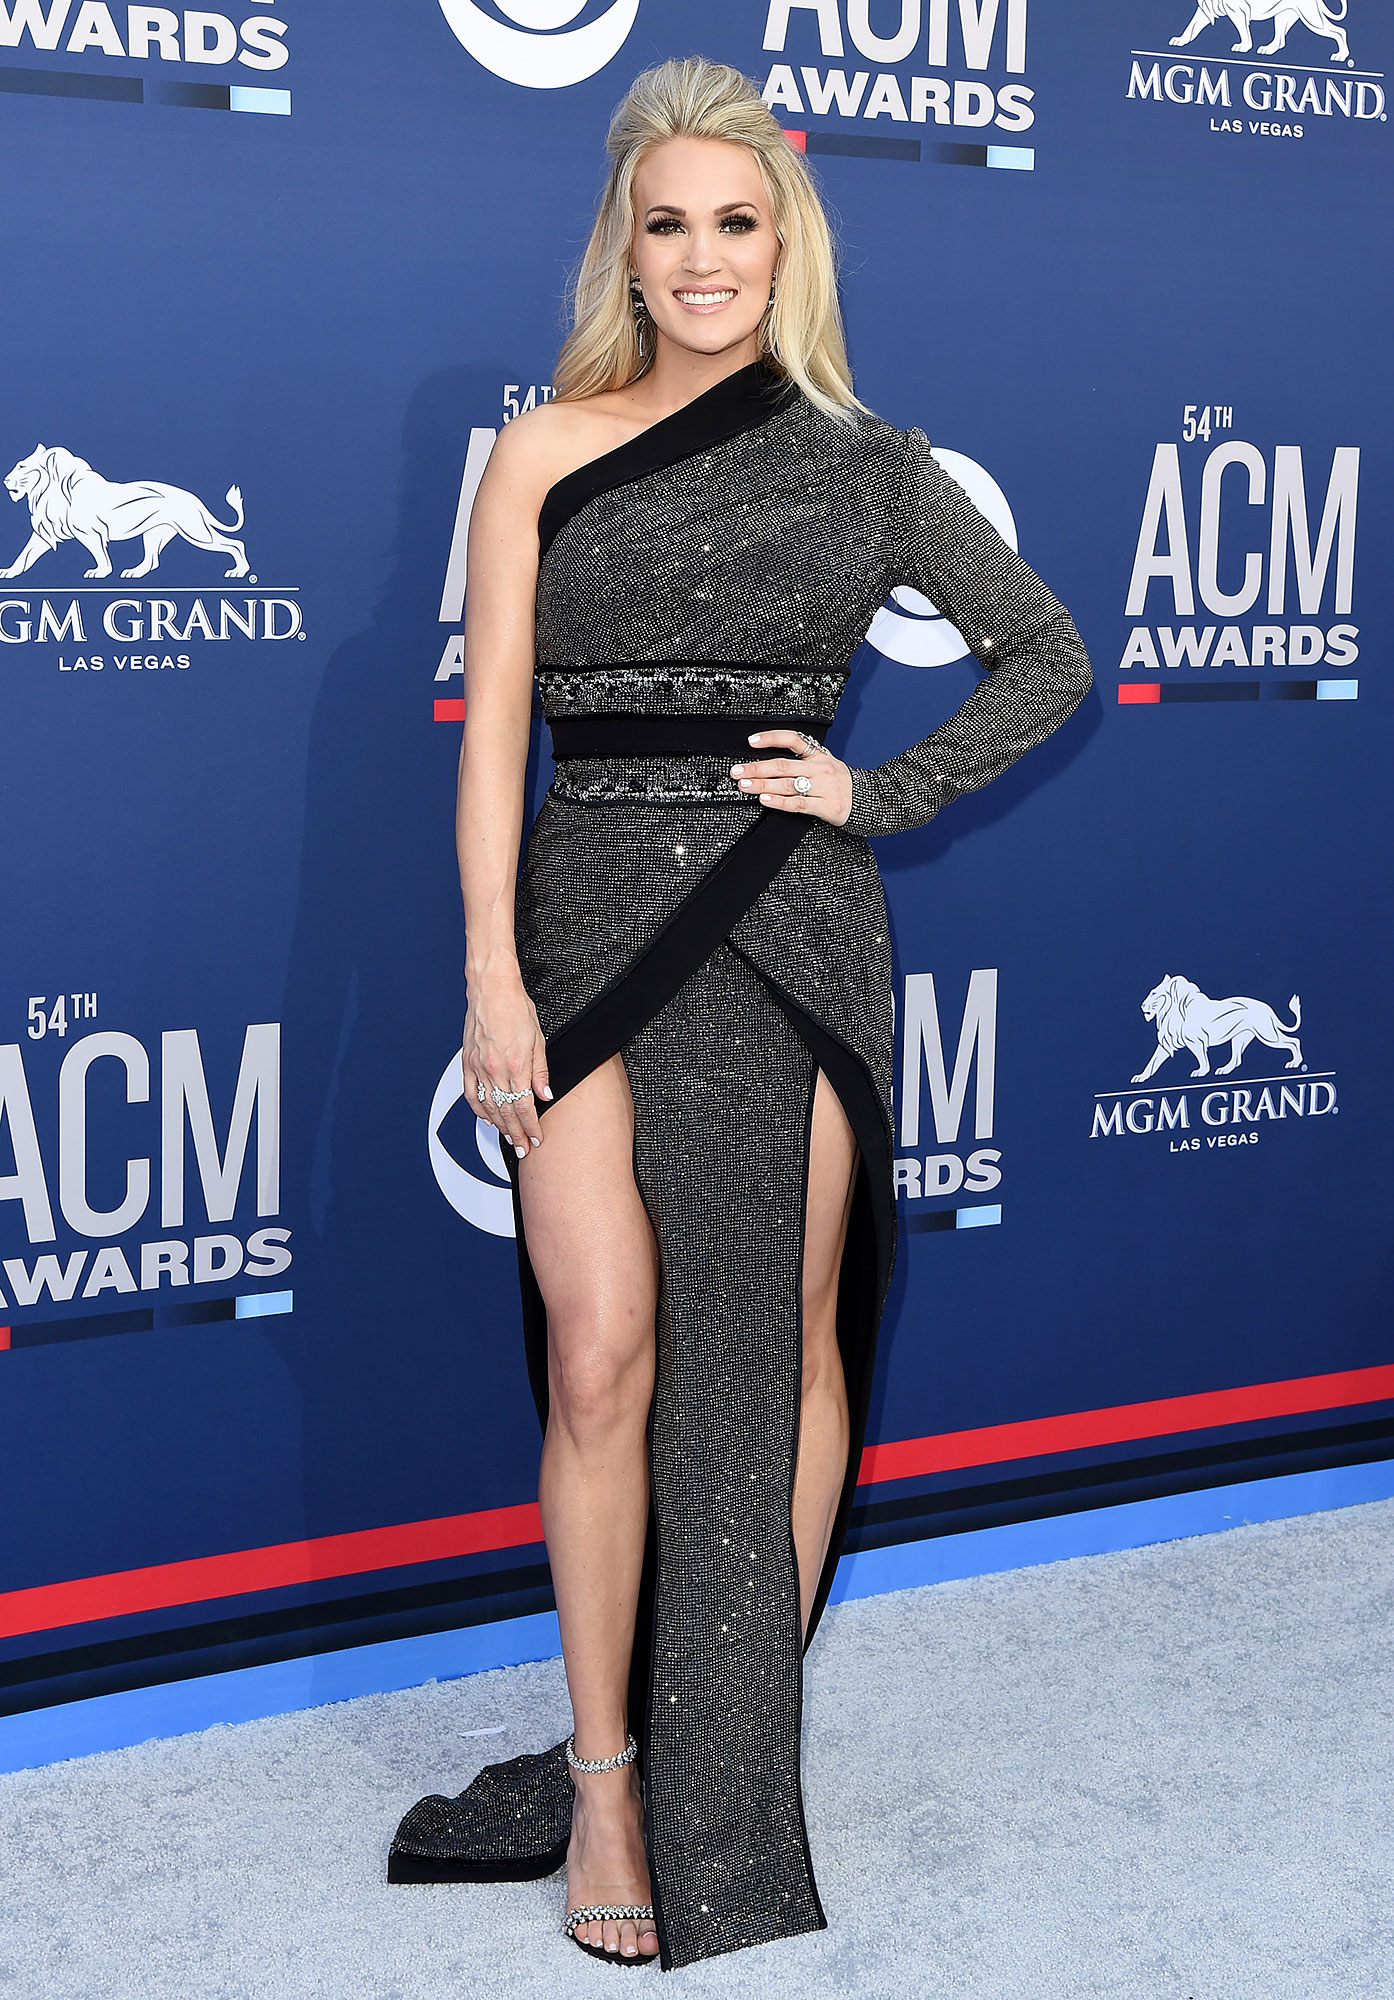 Carrie Underwood Wants Baby Girl - Carrie Underwood attends the 54th Academy of Country Music Awards at MGM Grand Garden Arena on April 07, 2019 in Las Vegas, Nevada.